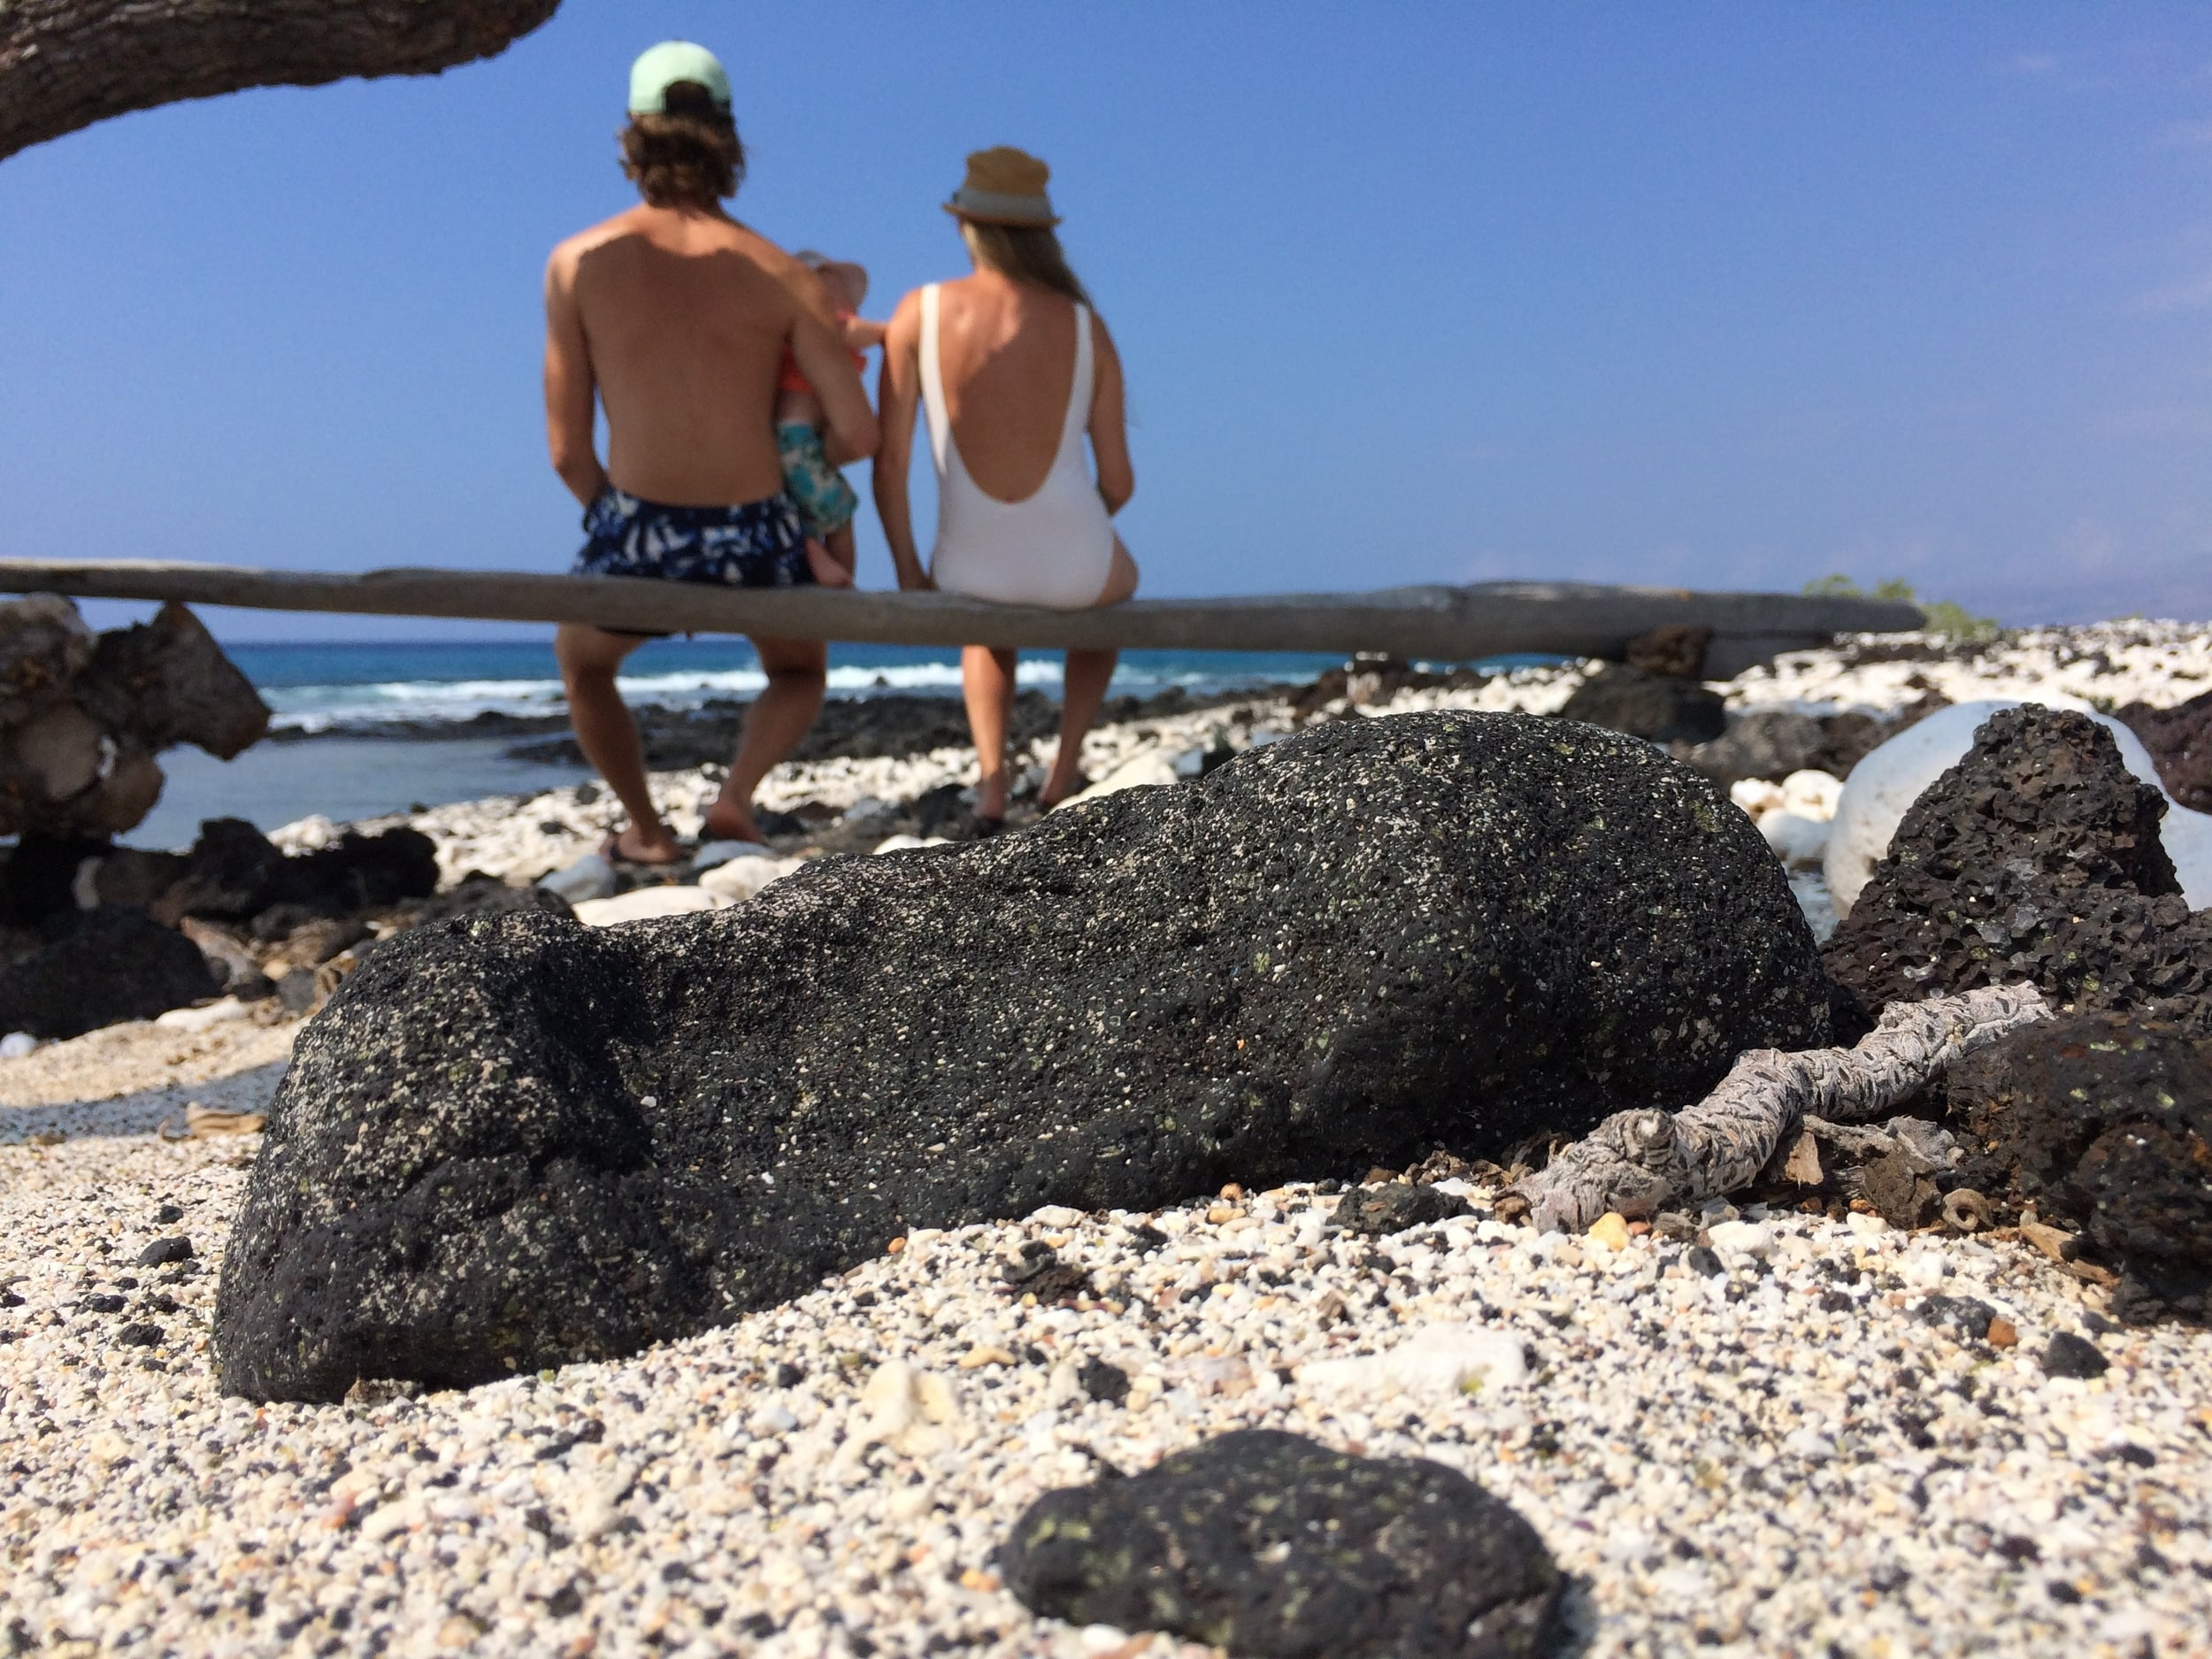 For the beach-perfect selfies { find out how to take a great family selfie here }!